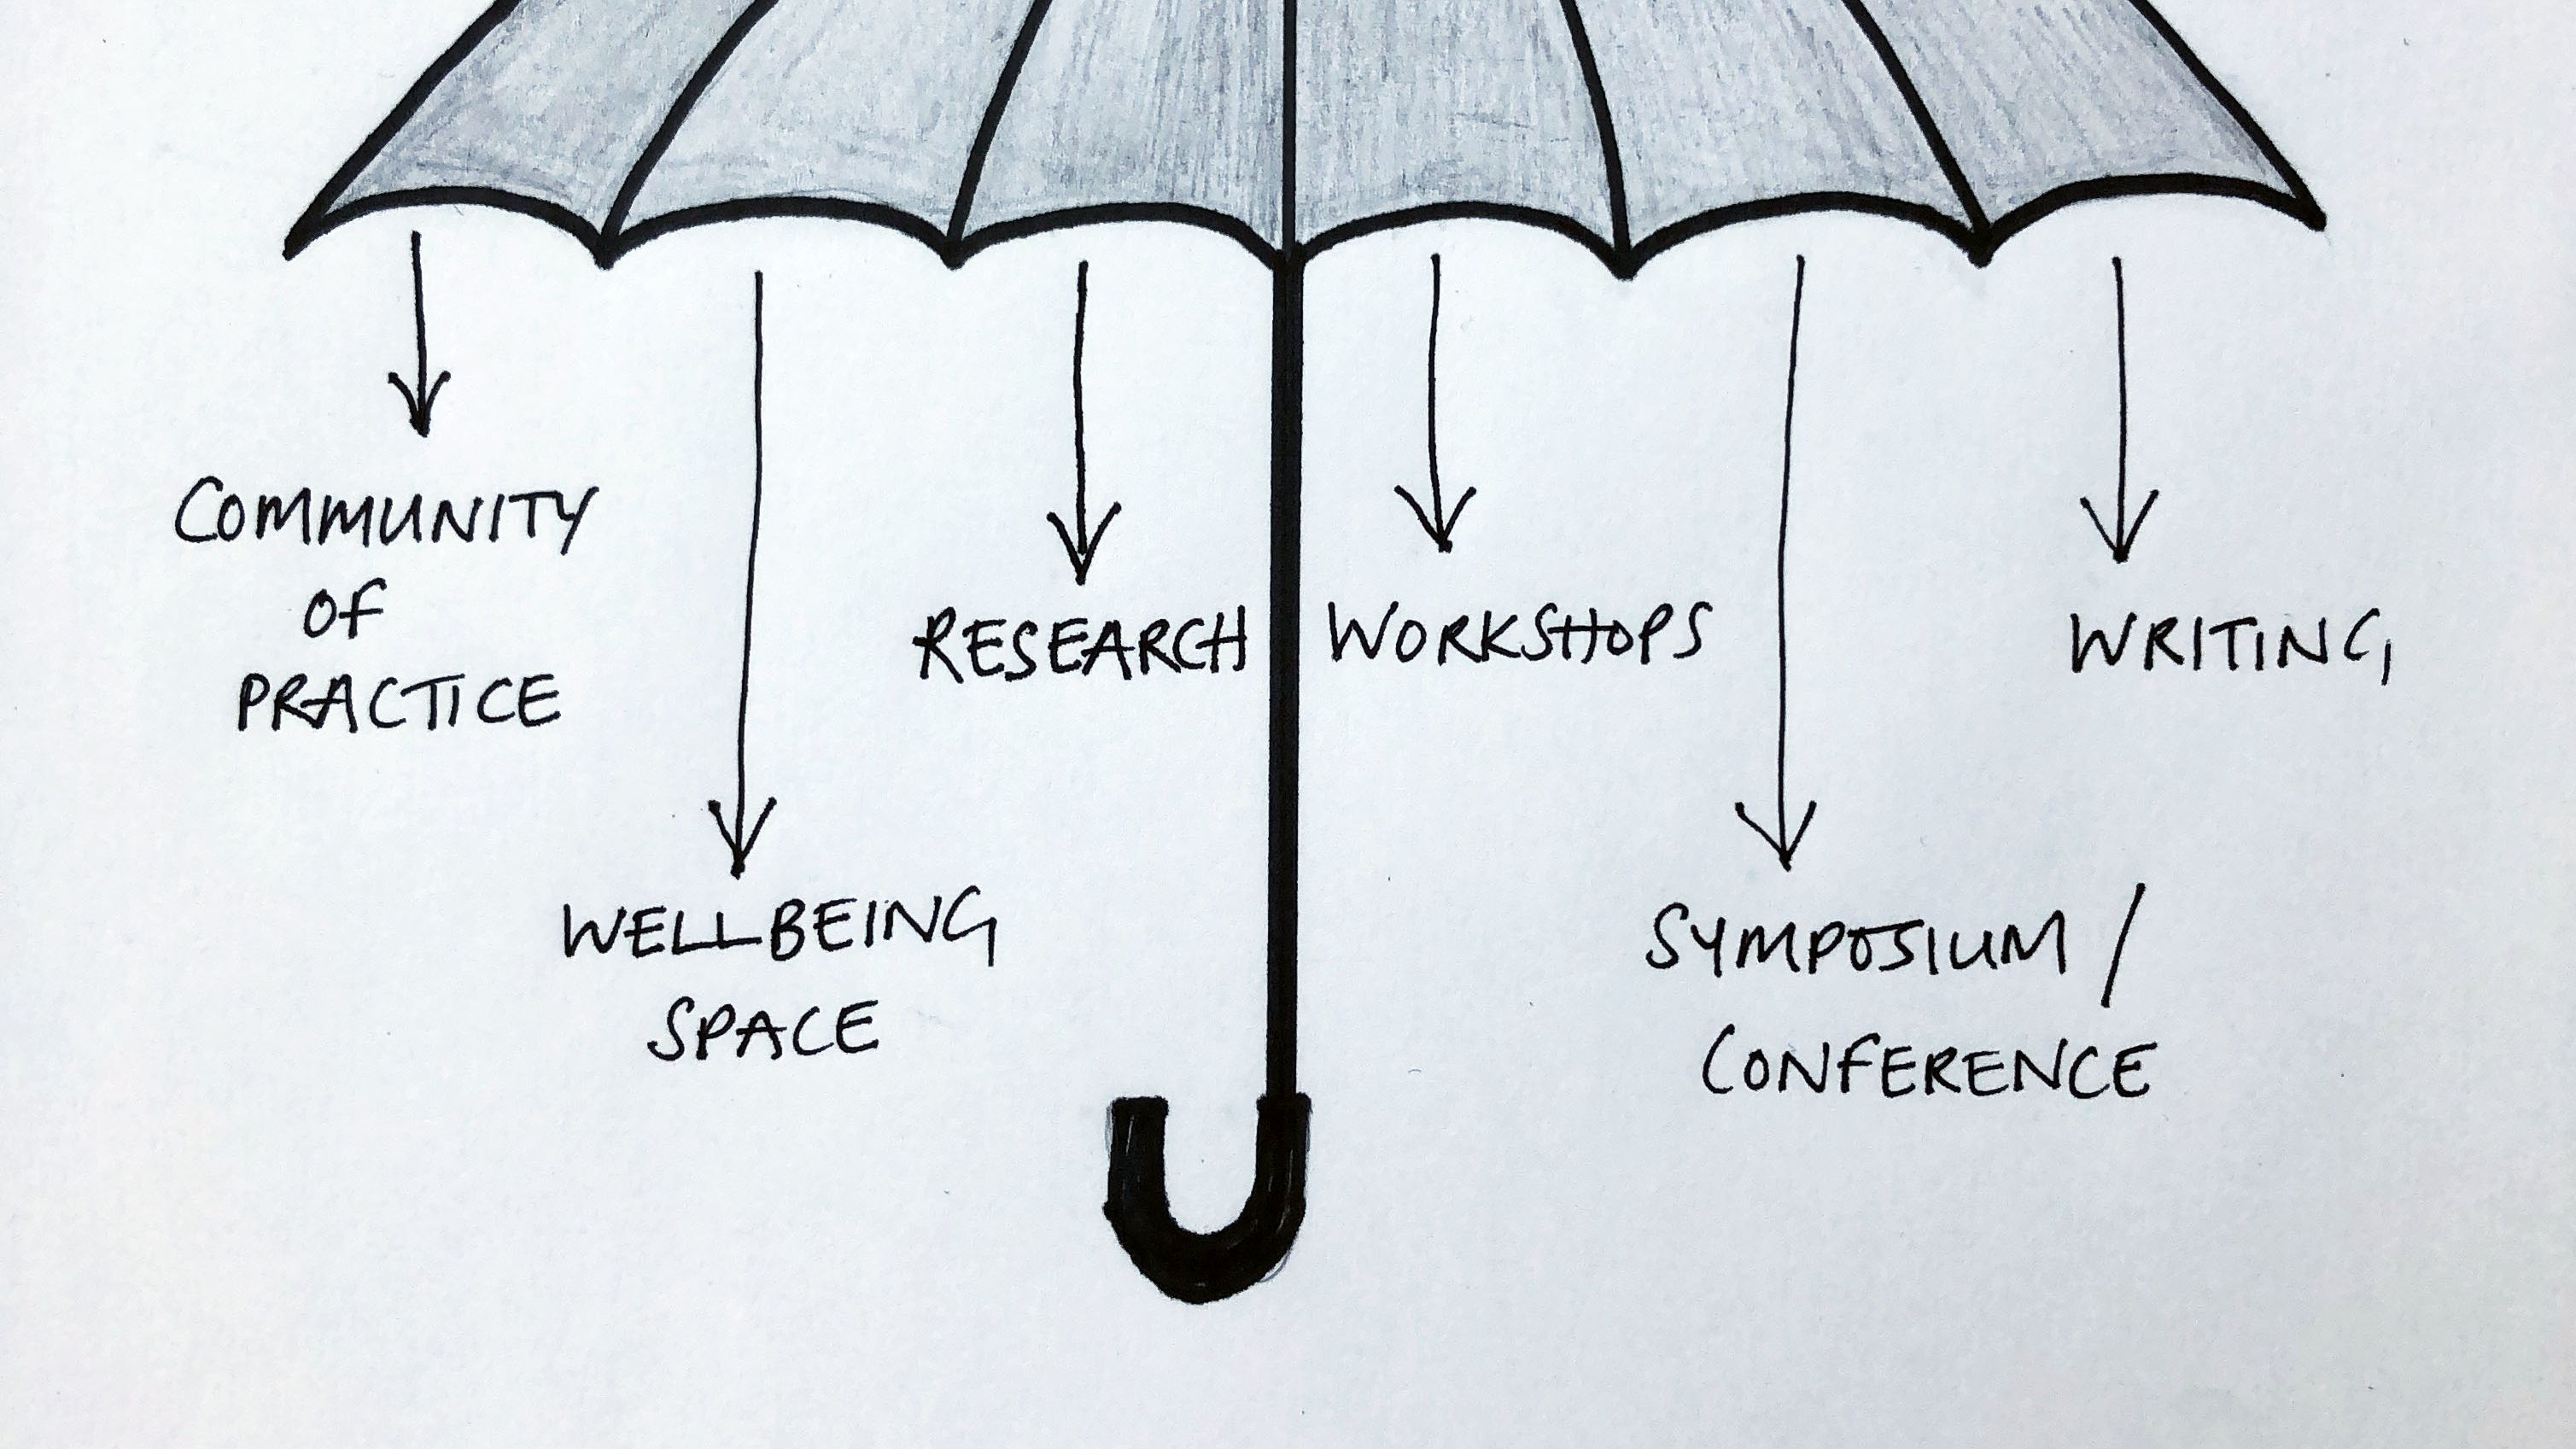 A drawing of an umbrella with arrows pointing down reading